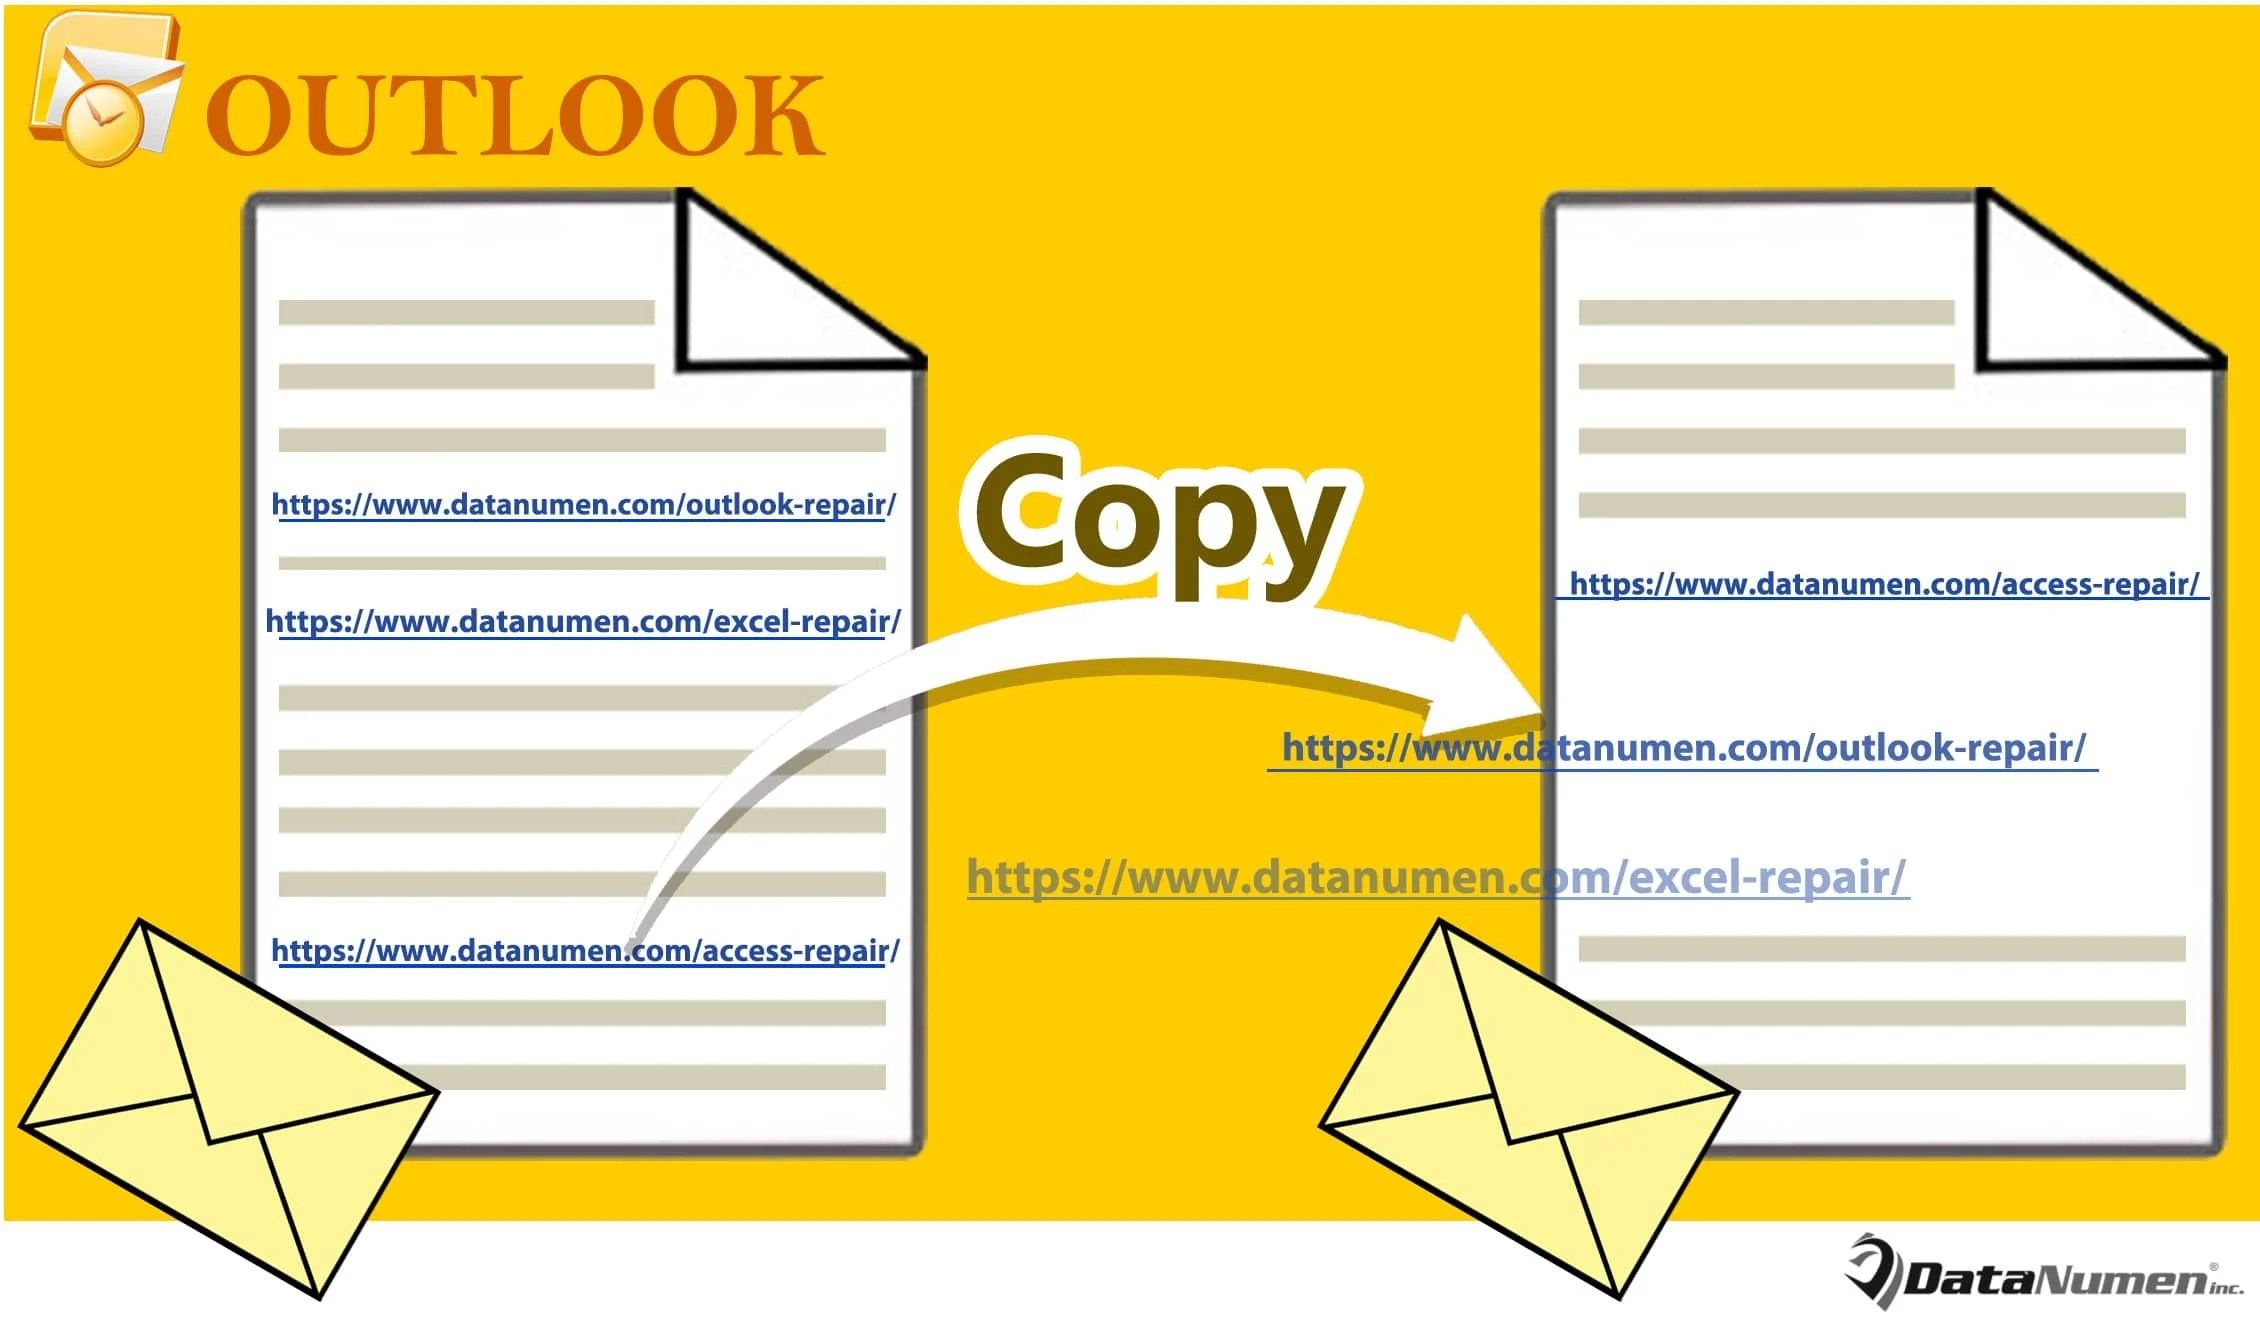 Quickly Copy All Embedded URLs from One Outlook Email to Another